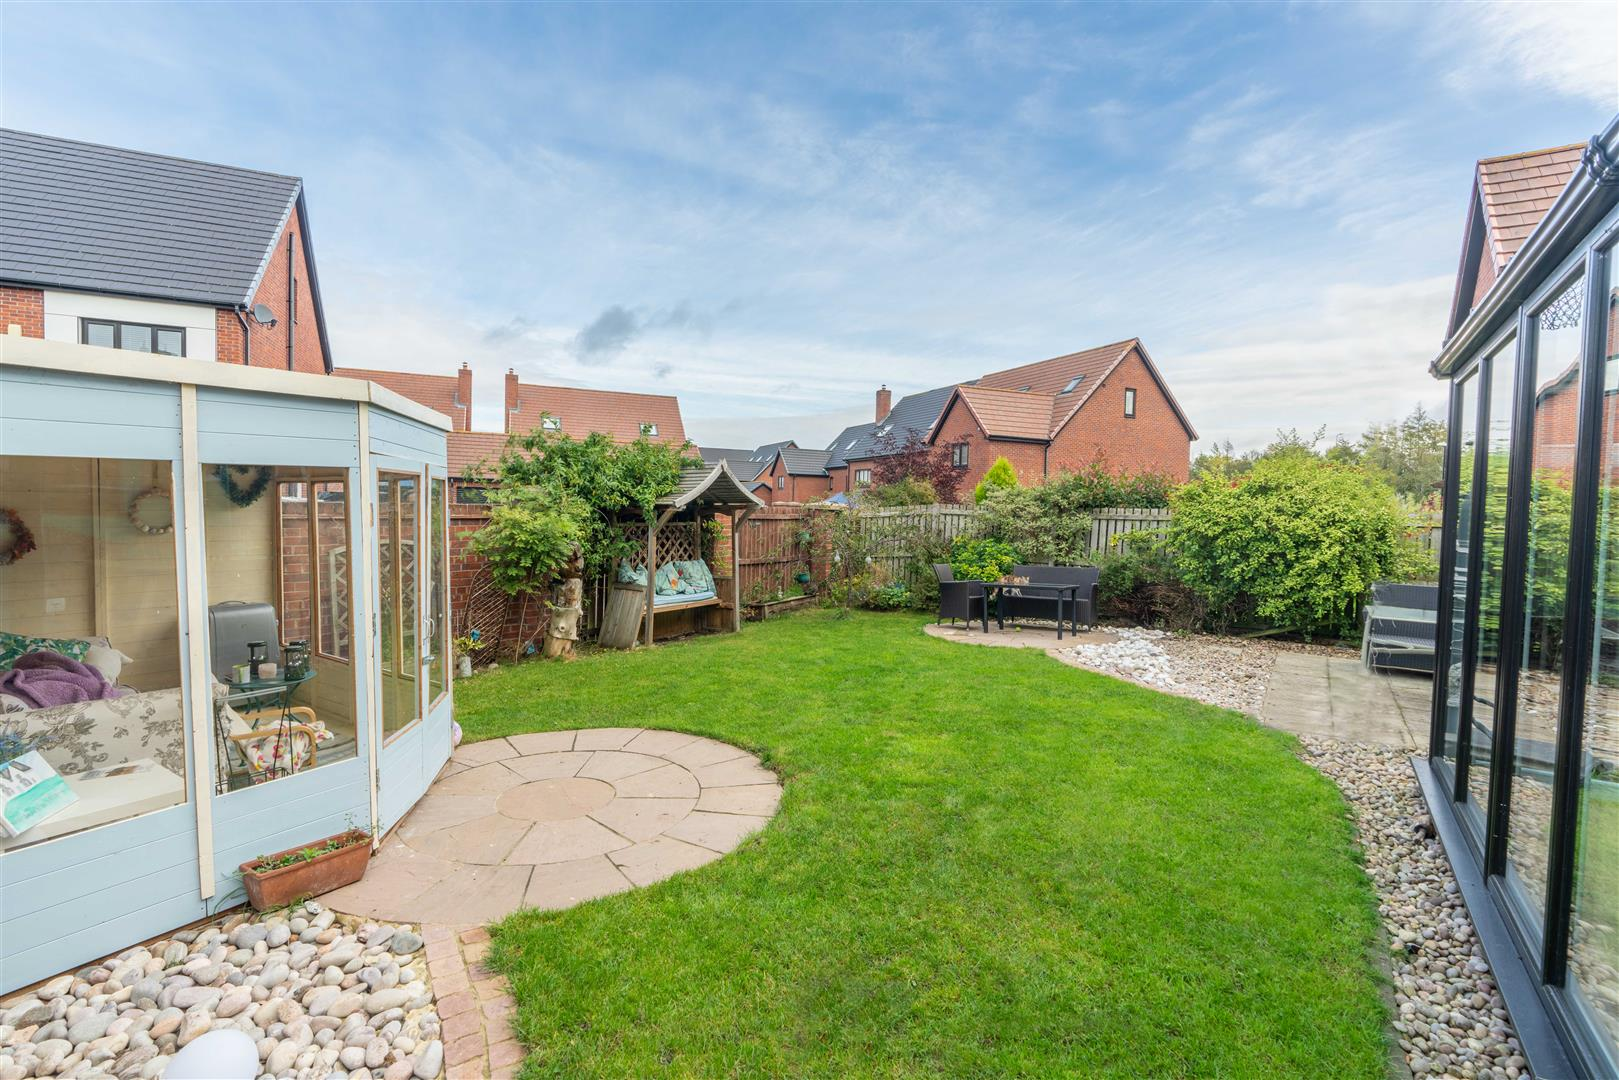 6 bed detached house for sale in Abberwick Walk, Newcastle Upon Tyne 6